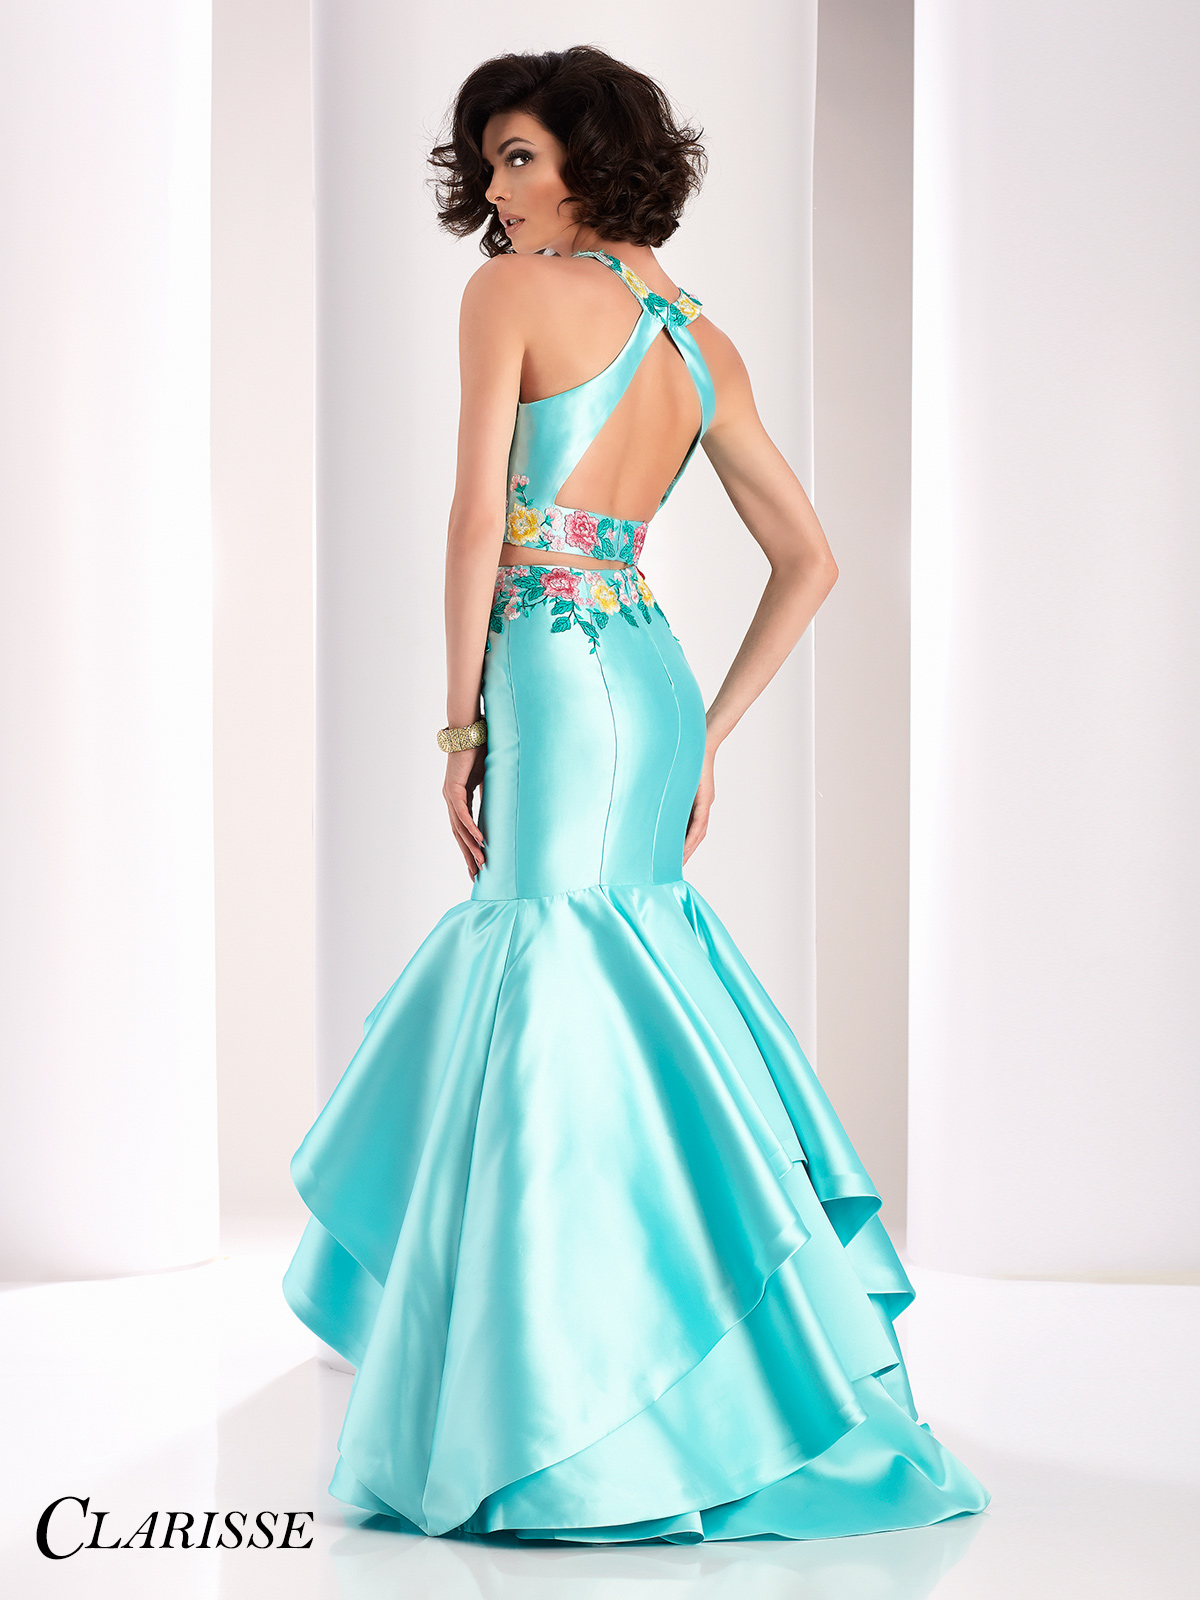 Outstanding Prom Dresses Parkersburg Wv Ornament - All Wedding ...